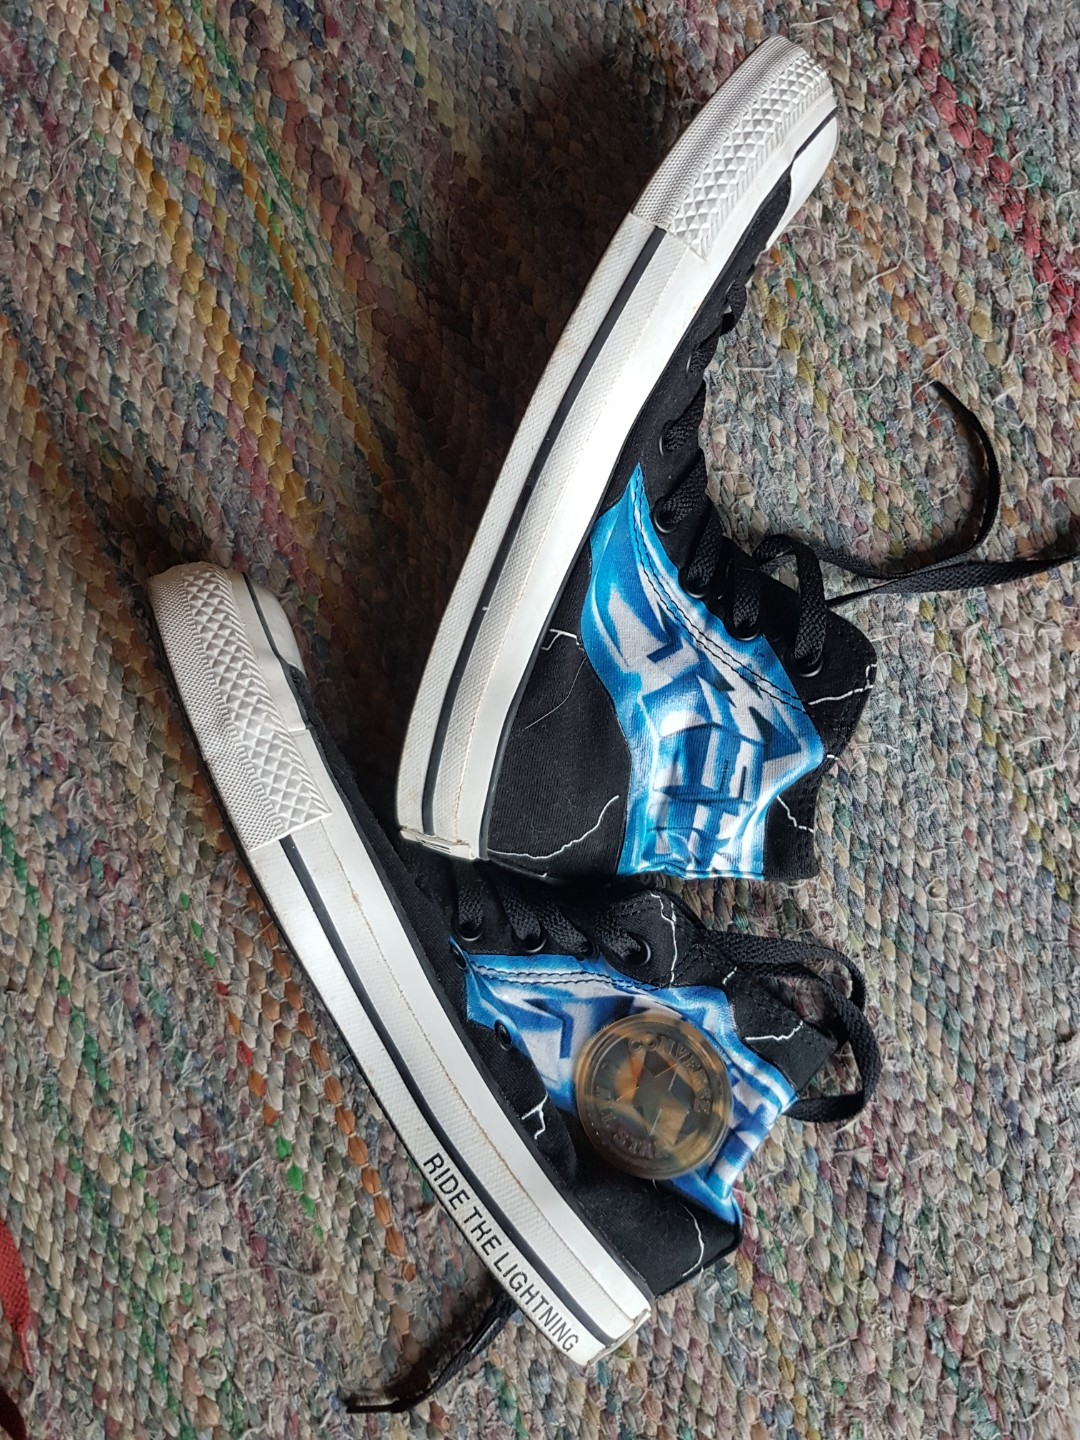 1042adc7d7a5 Home · Men s Fashion · Footwear · Sneakers. photo photo photo photo photo